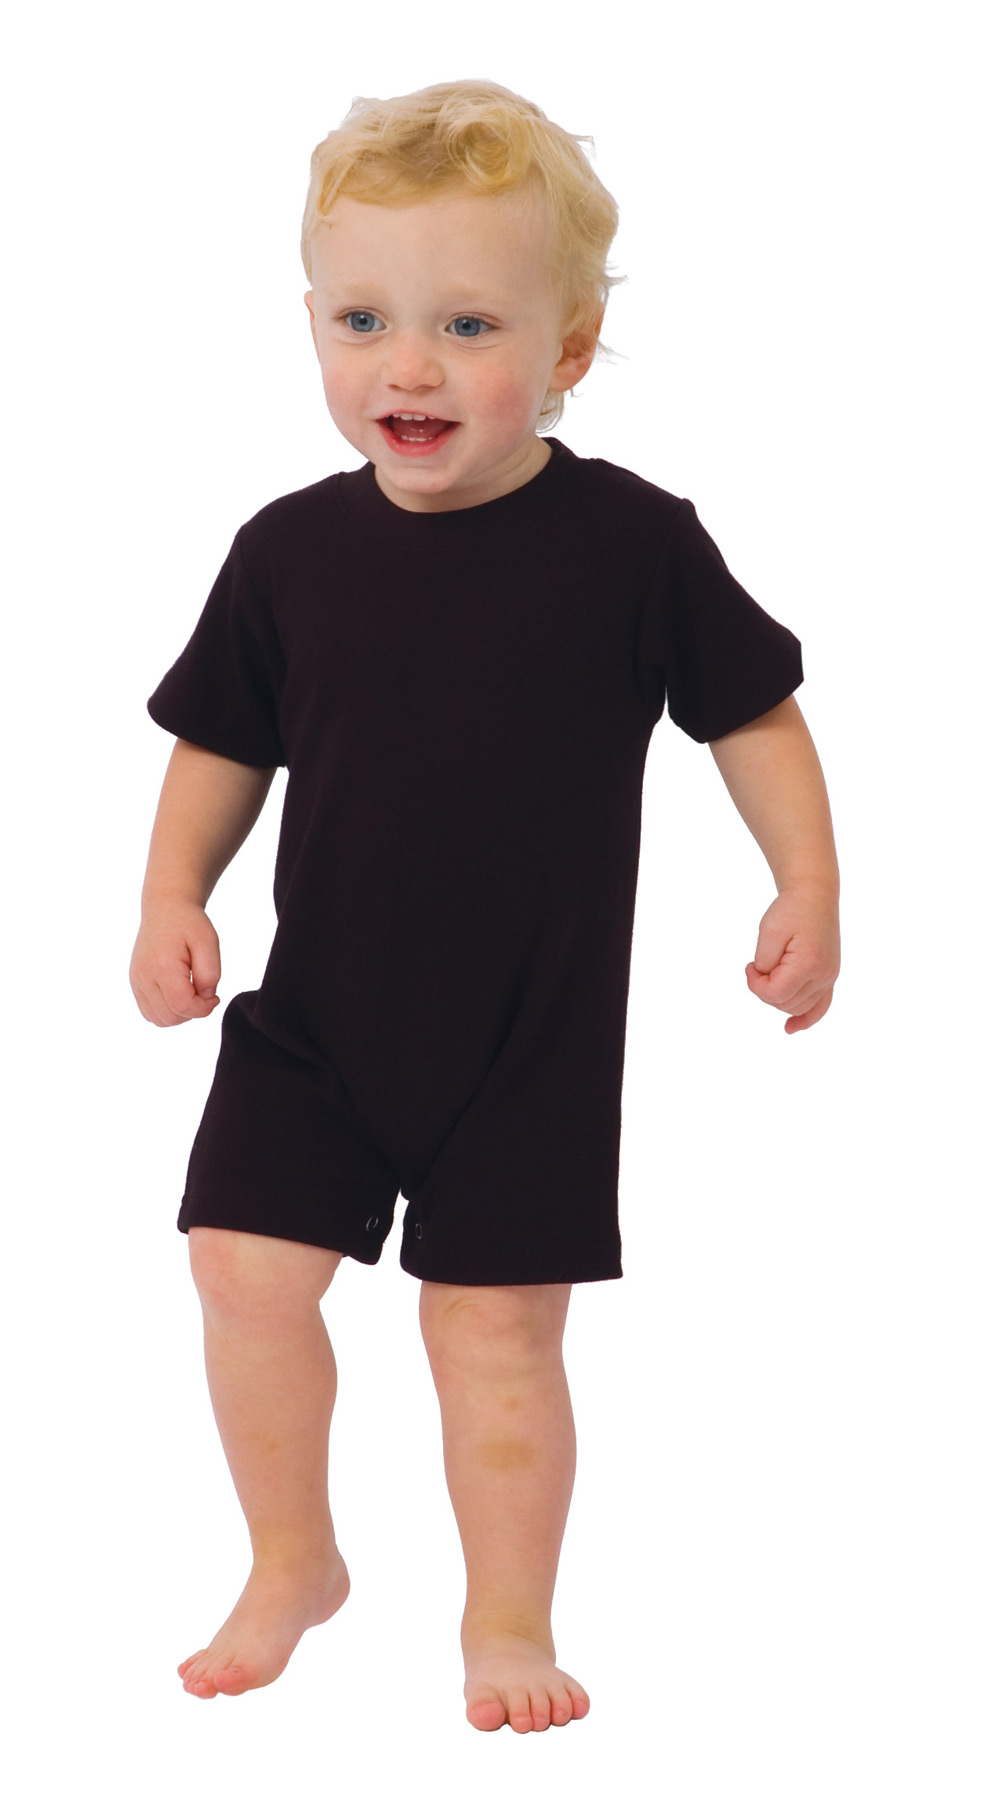 Monag 100008 - Interlock Short Sleeve Romper